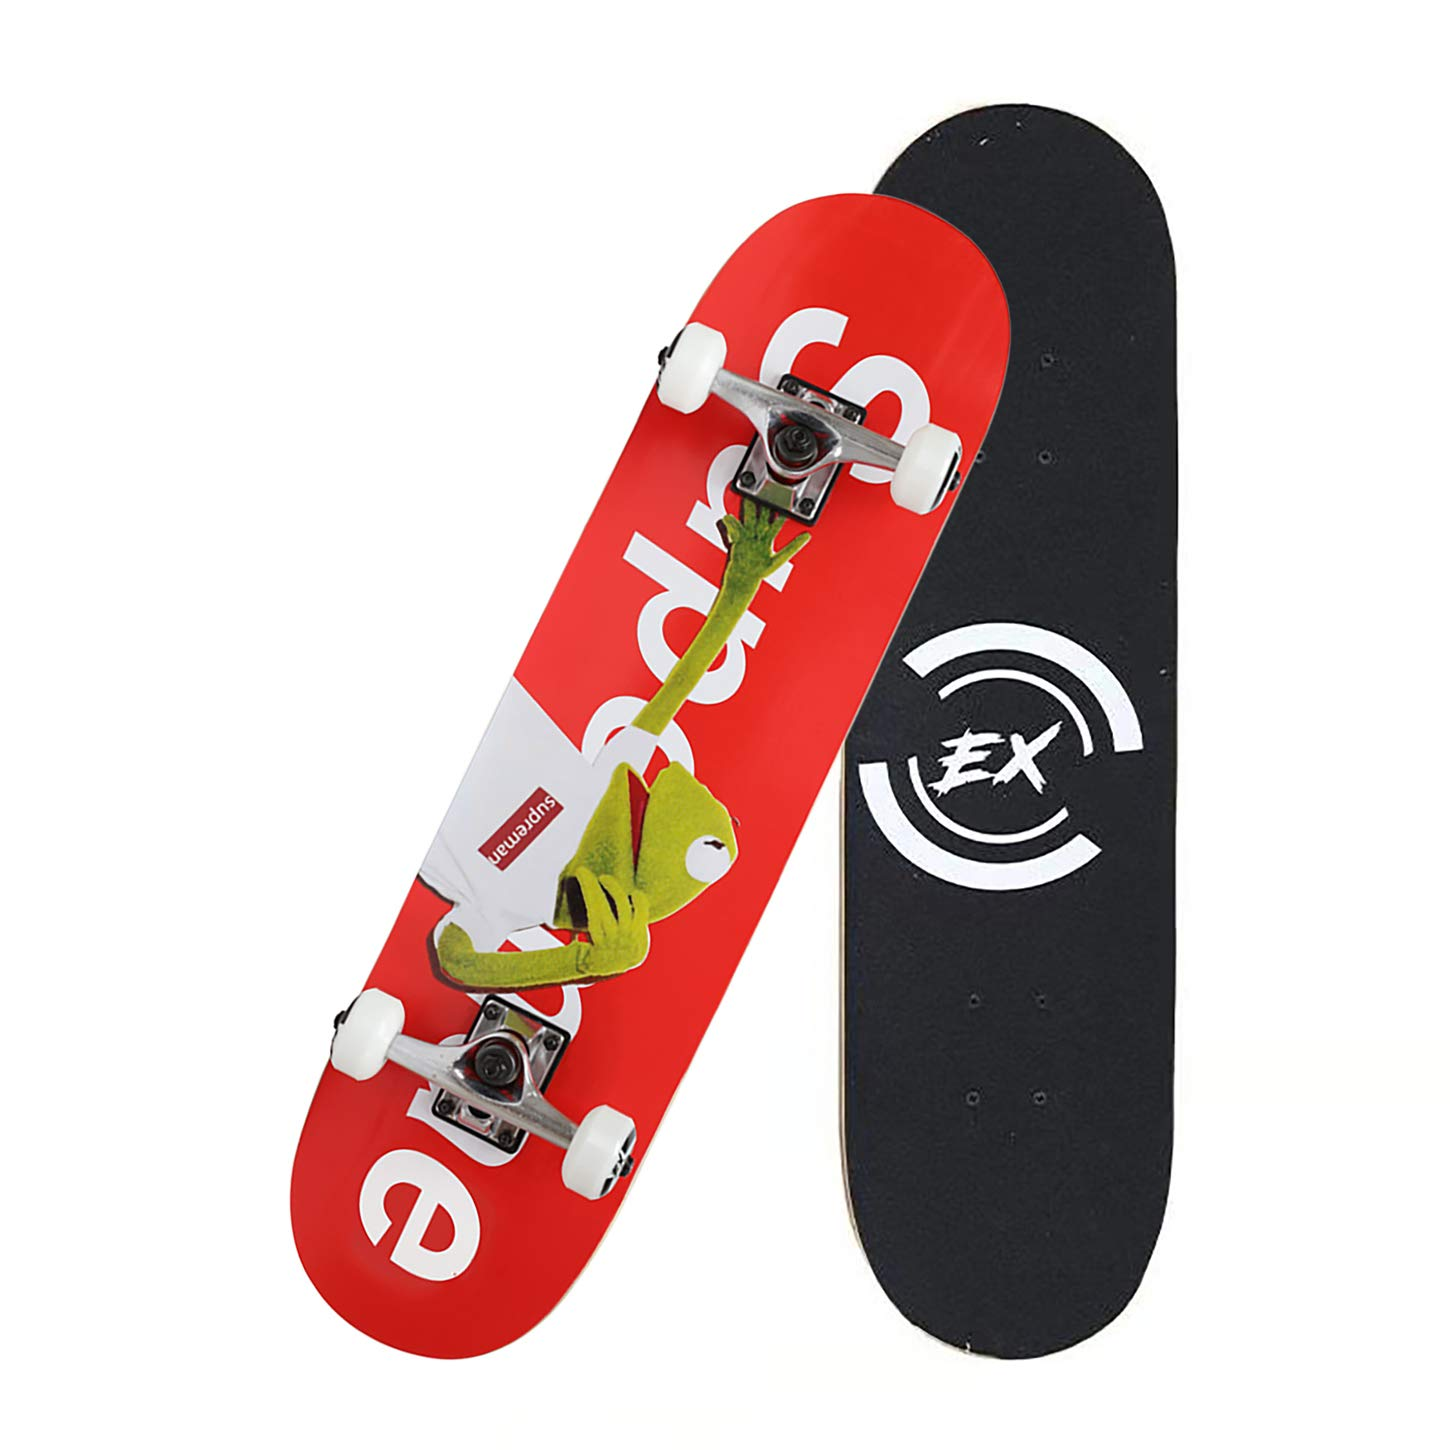 Pro Skateboard 31'' X 8'' Standard Skateboards Cruiser Complete Canadian Maple 8 Layers Double Kick Concave Skate Boards (DYS-SKATE-019)